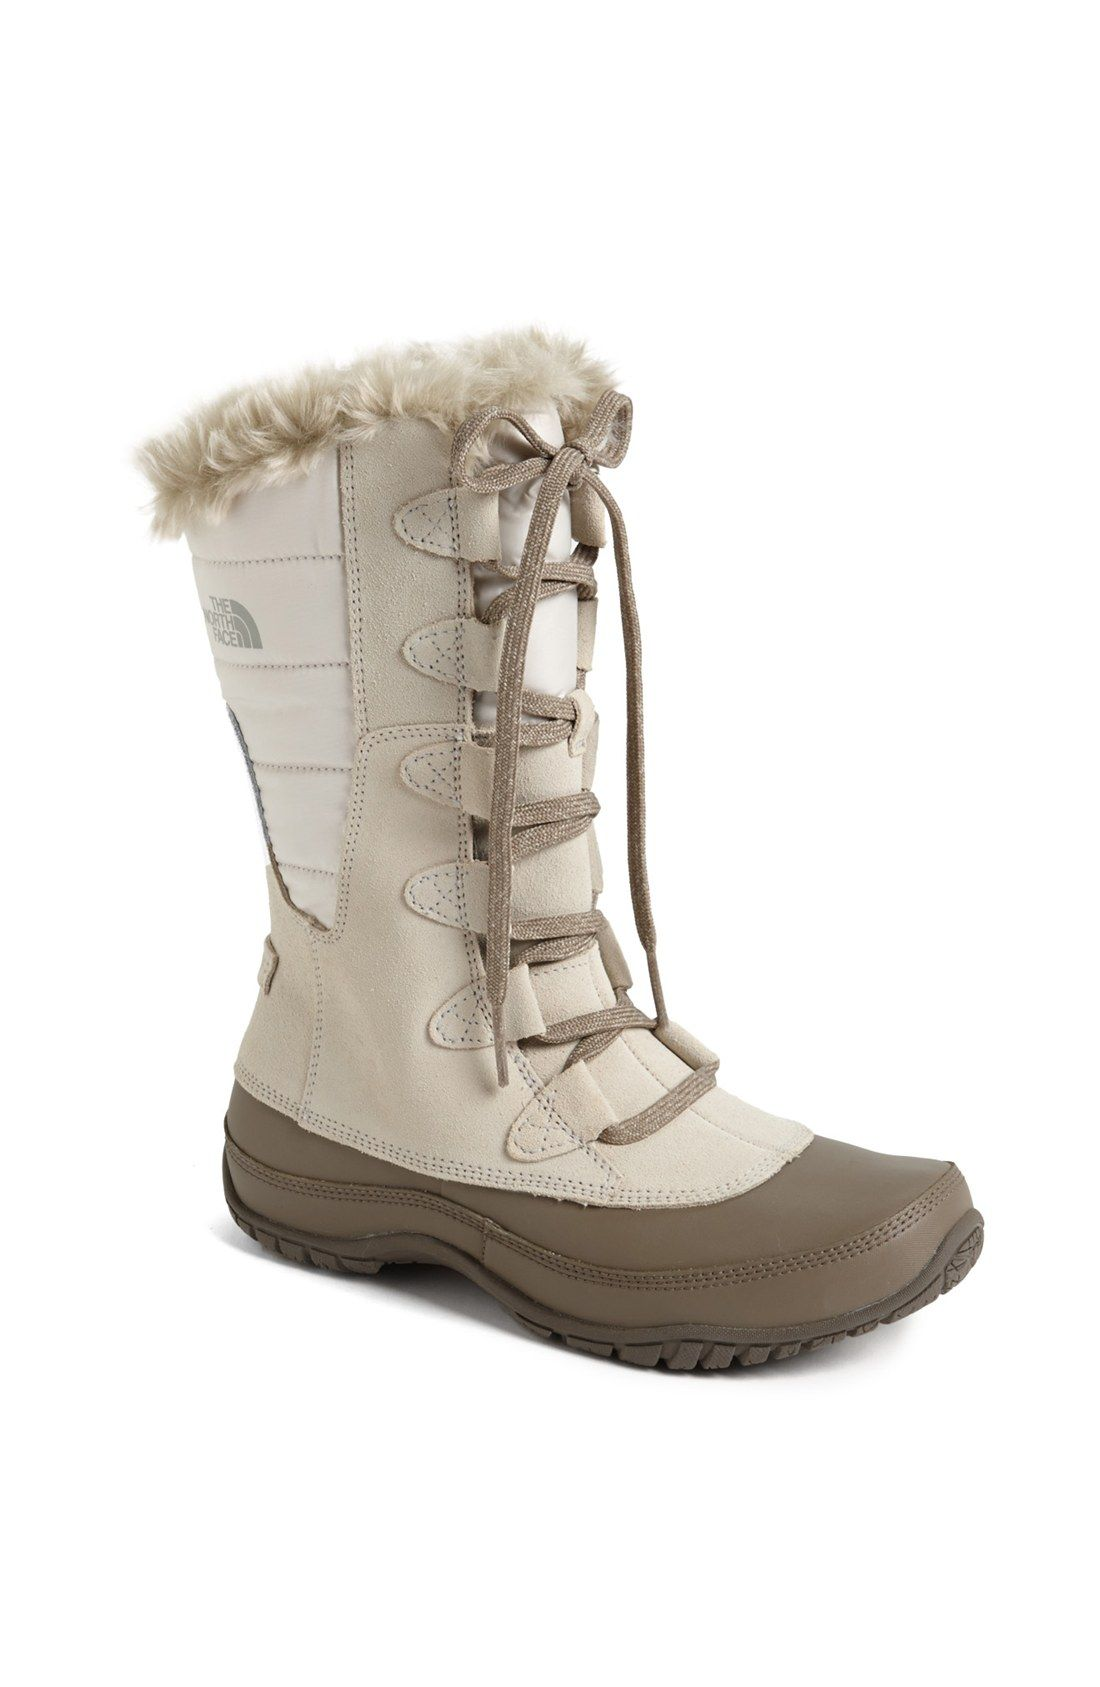 4c456ec6b The North Face 'Nuptse Purna' Boot, Ivory/Beige, Size 8 | Snow Bunny ...